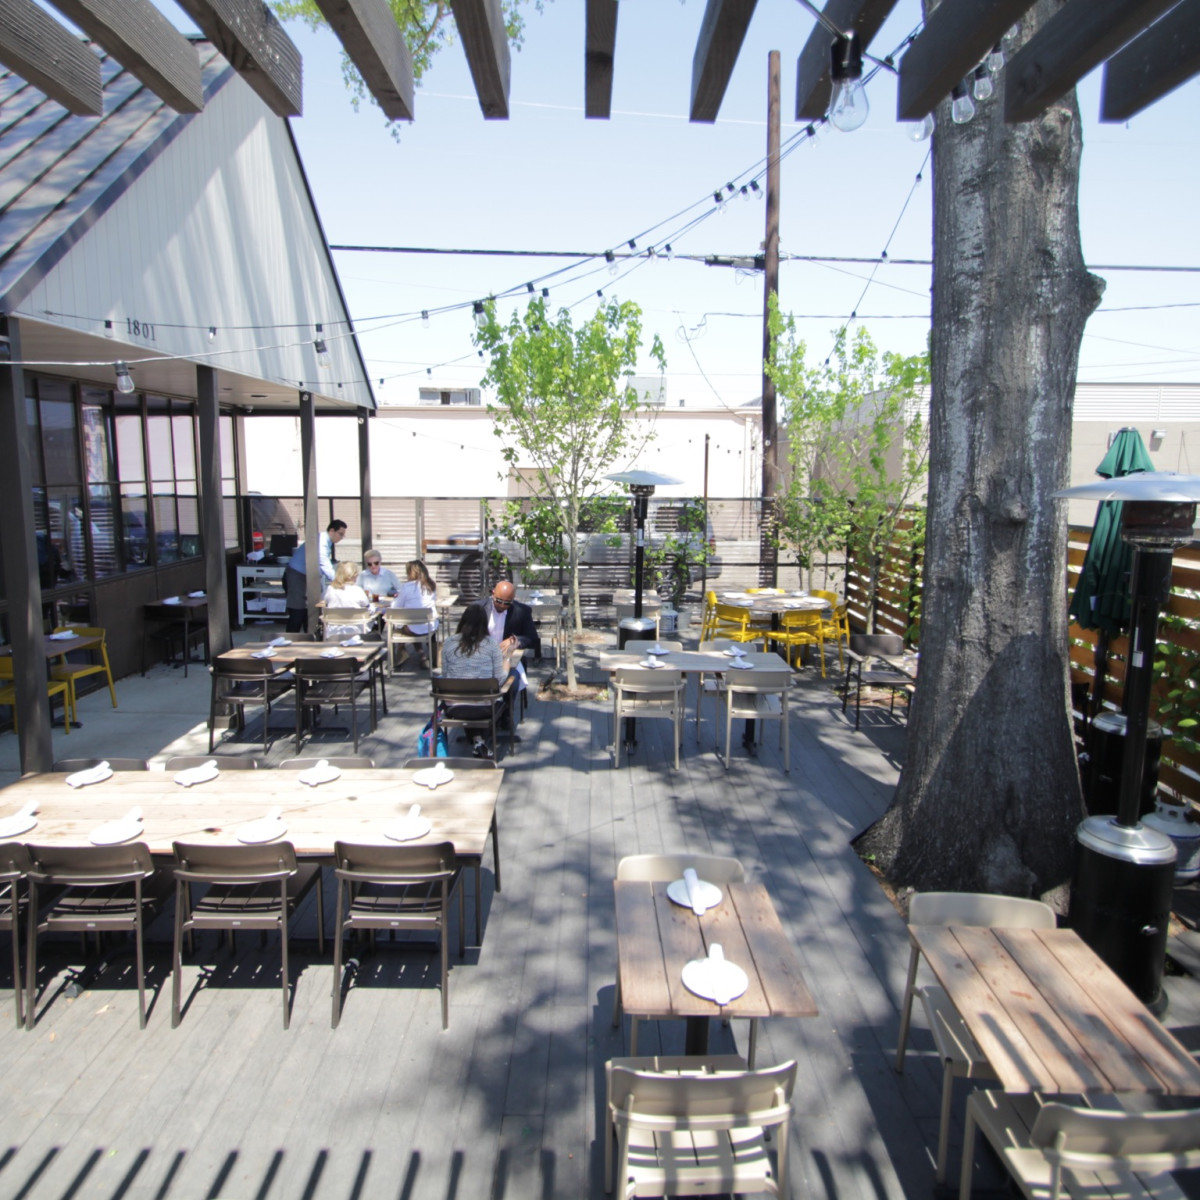 Bernadine's patio